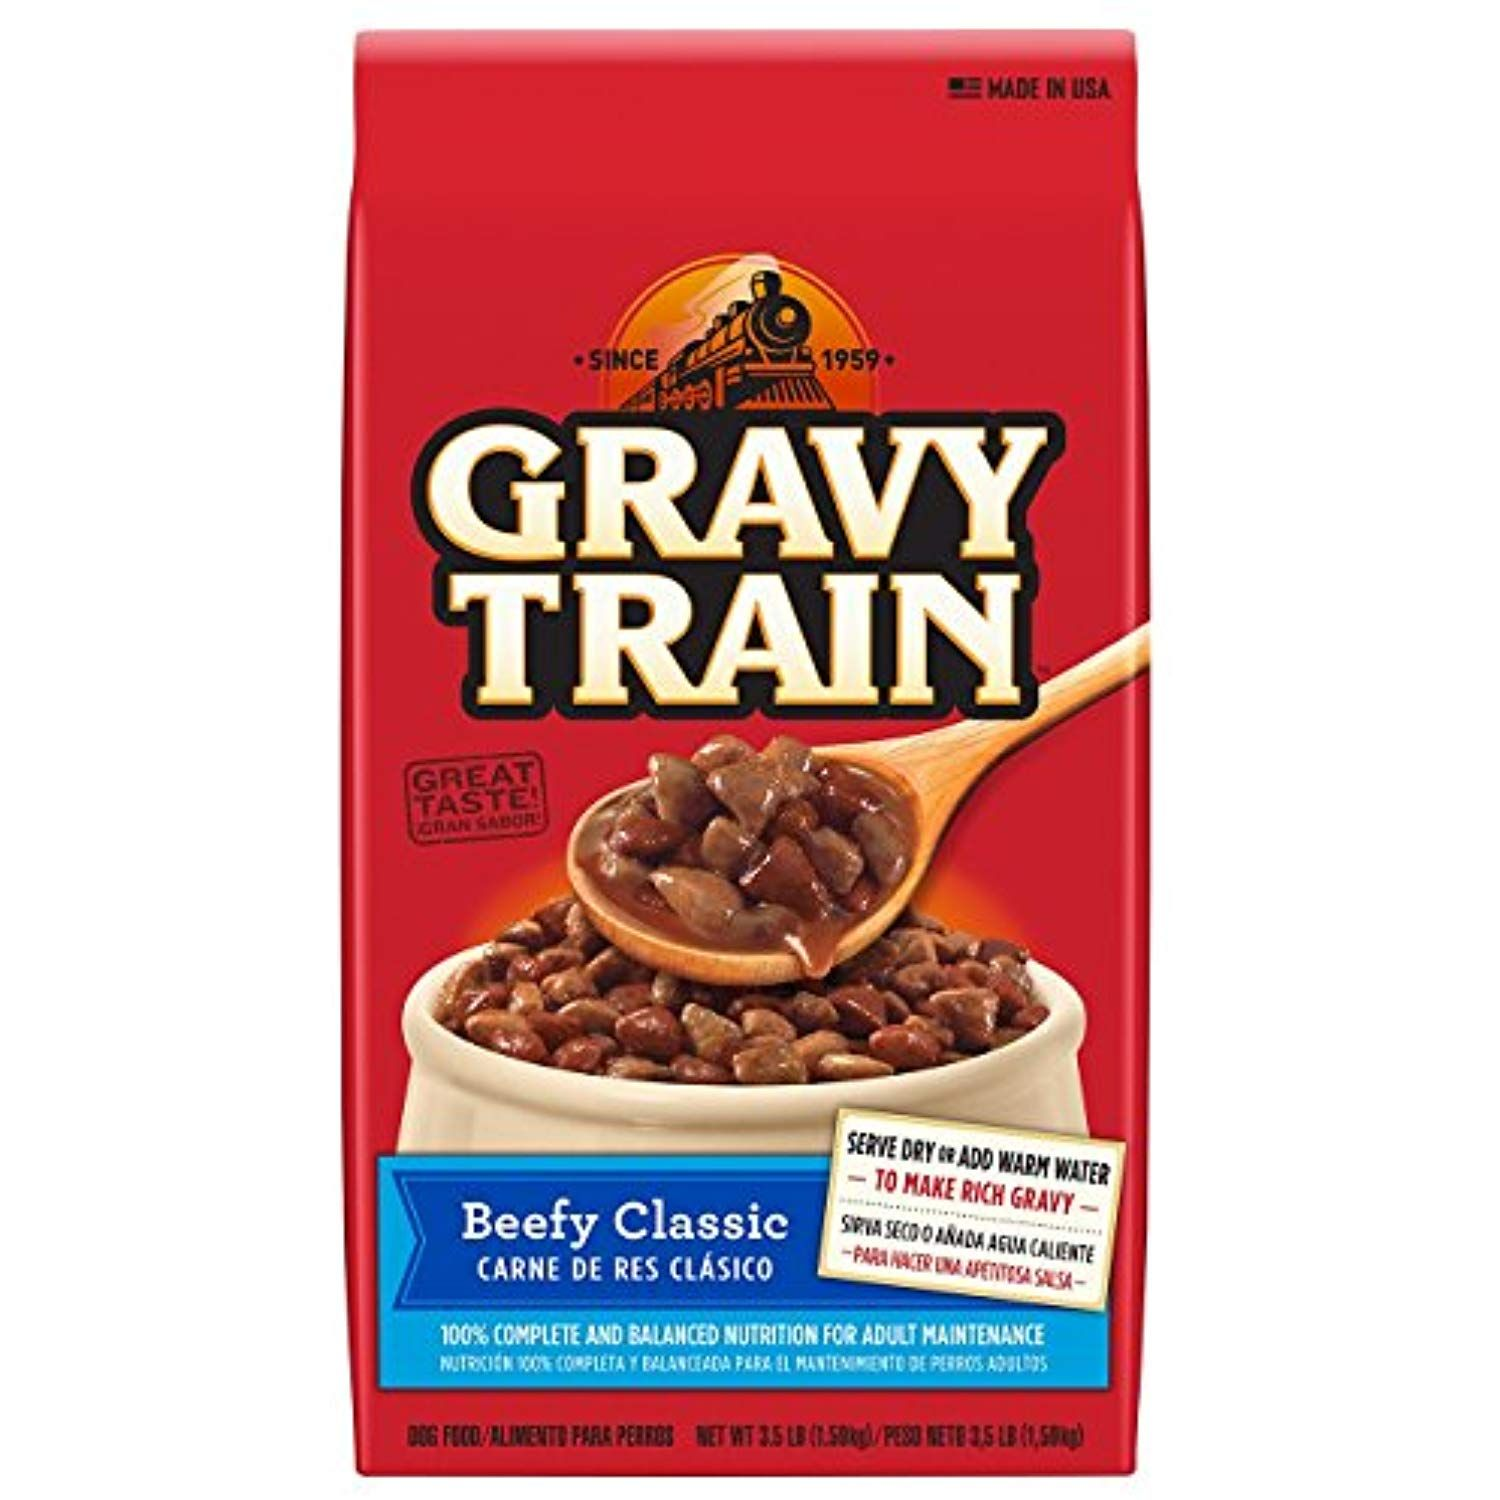 Gravy train beefy classic dry dog food 35 lb pack of 6